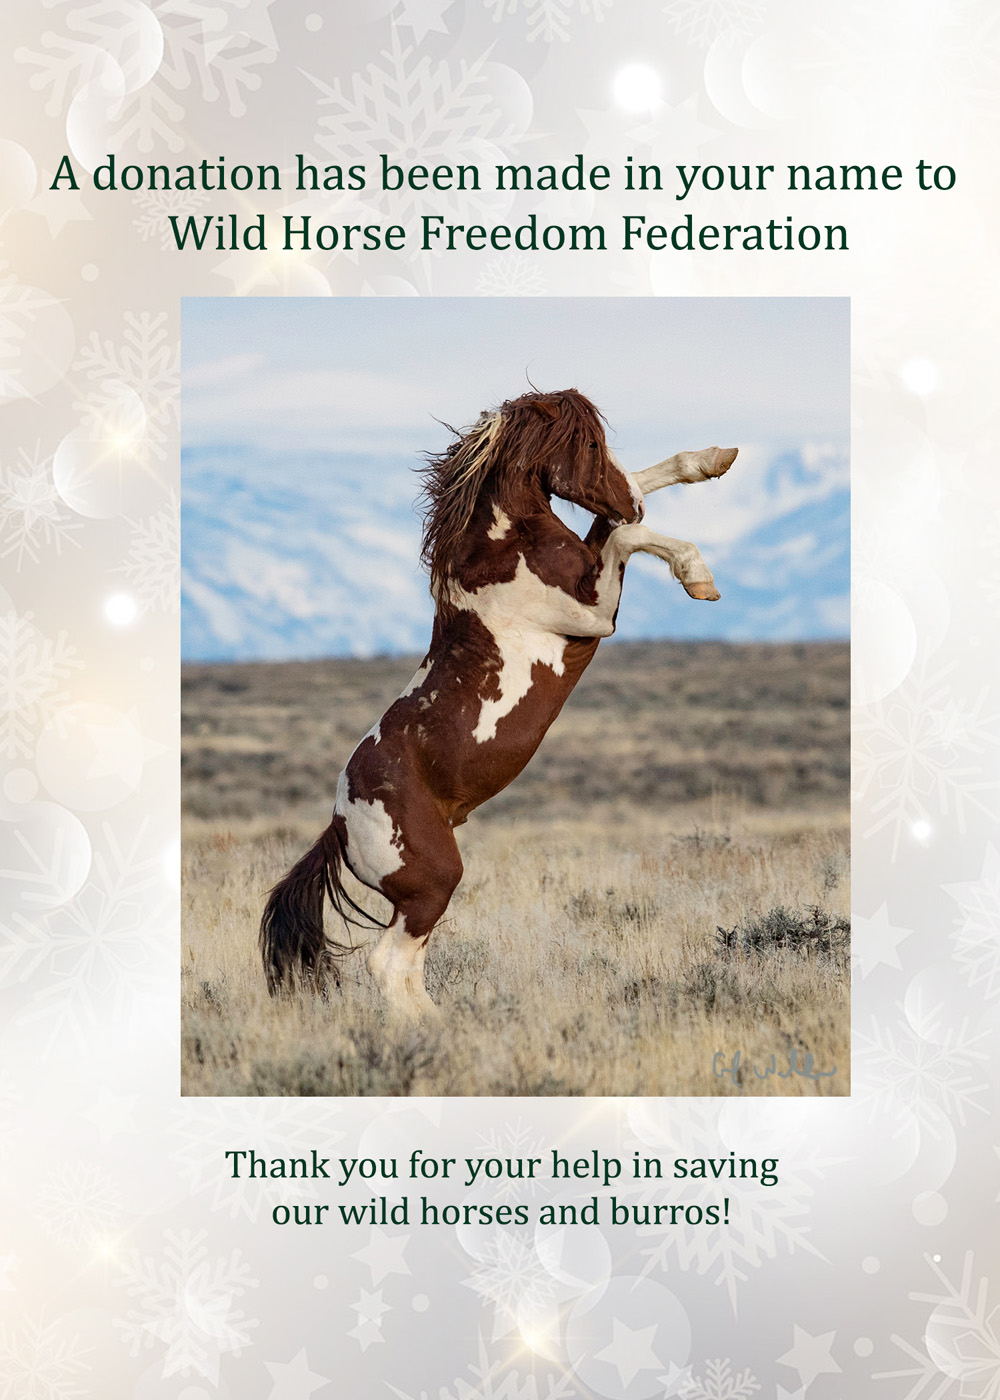 Give To Wild Horse Freedom Federation On Giving Tuesday And Receive The Gift Of Wild Horses Wild Horse Freedom Federation